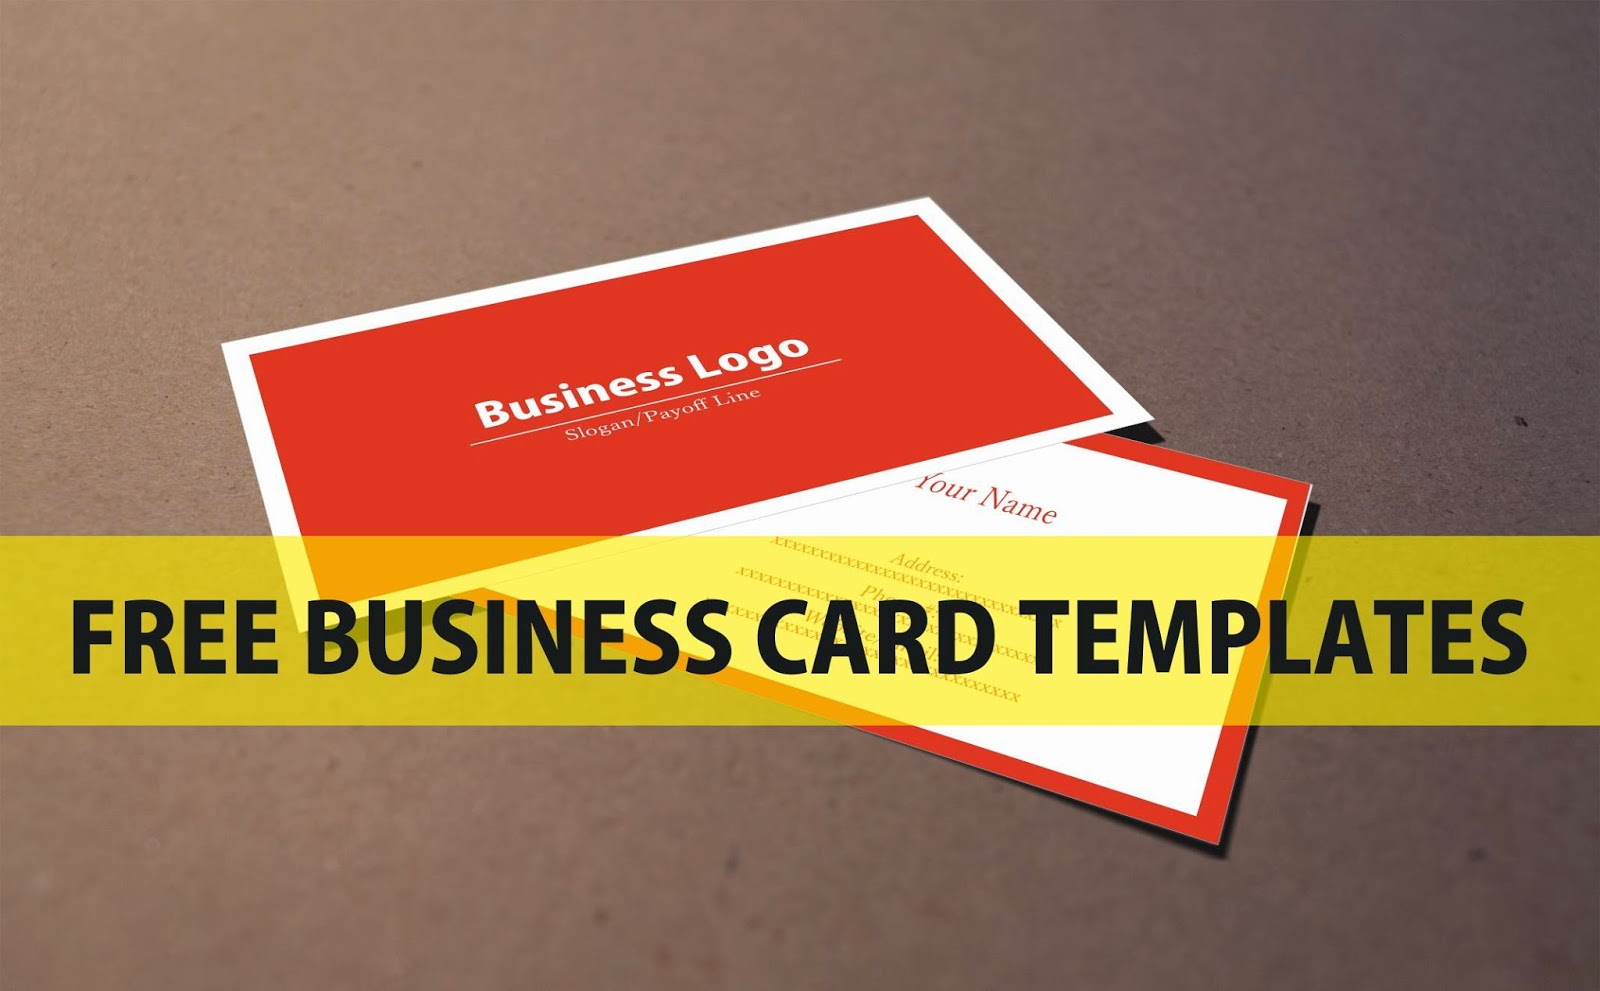 Freebusinesscardtemplatesg reheart Gallery